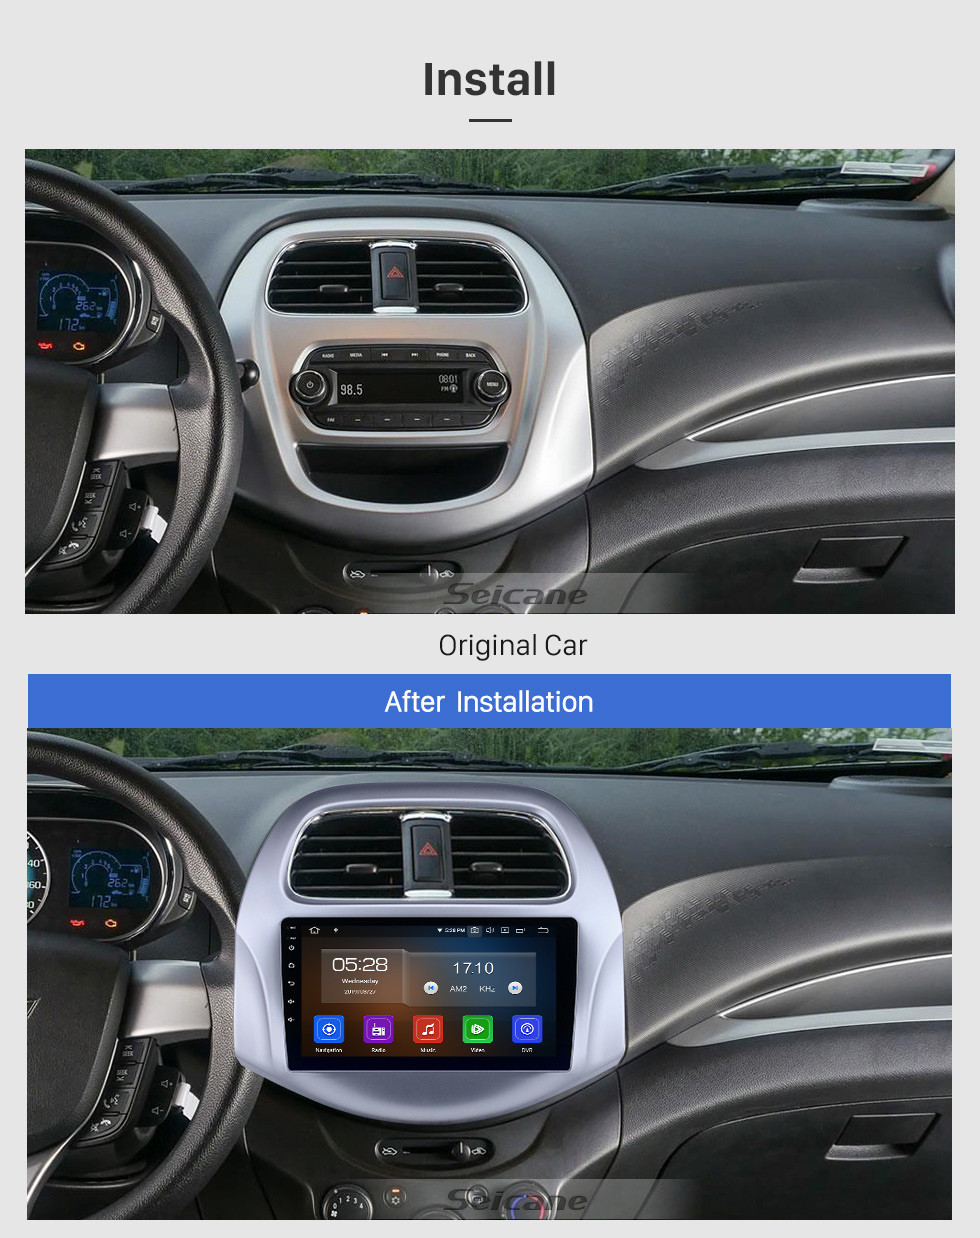 Seicane 2018-2019 chevy Chevrolet Daewoo Matiz/ Spark/ Baic/ Beat Touchscreen Android 9.0 9 inch GPS Navigation Radio USB Bluetooth Carplay AUX support DVR OBD2